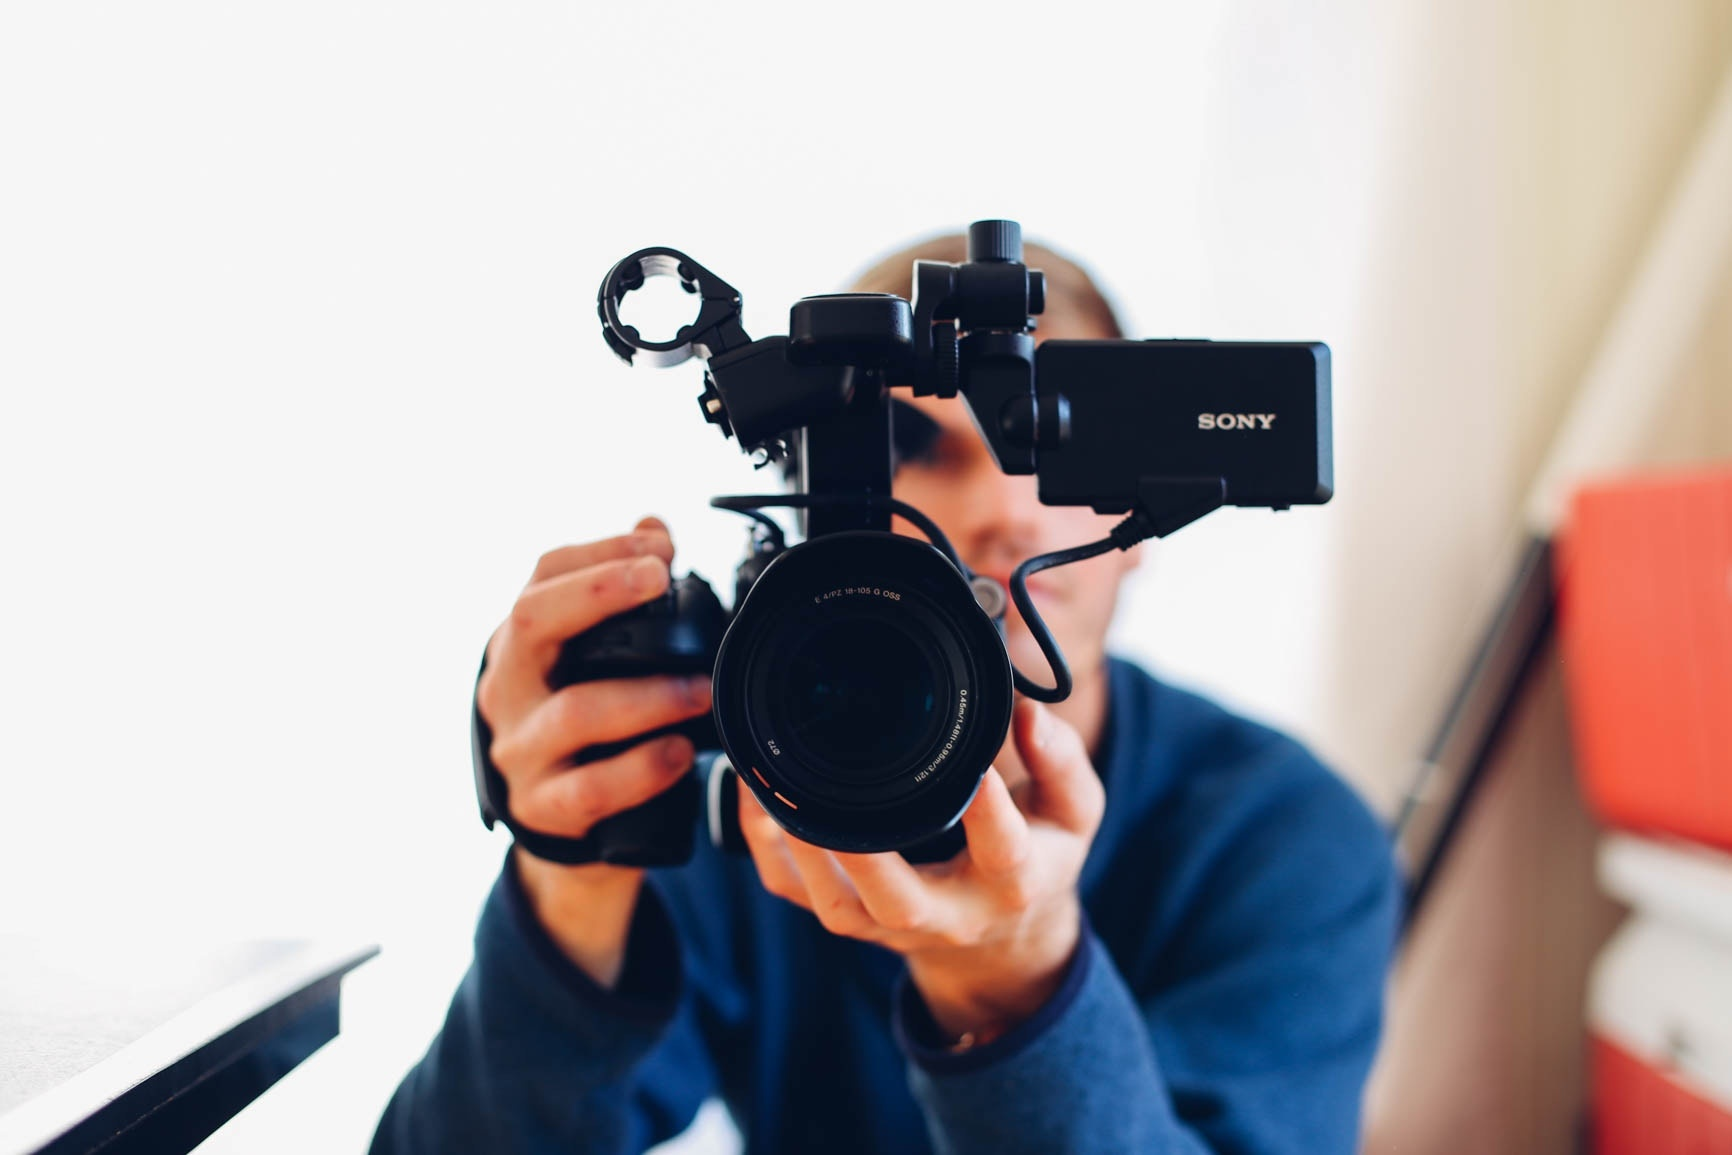 Converting video to text makes journalists work faster